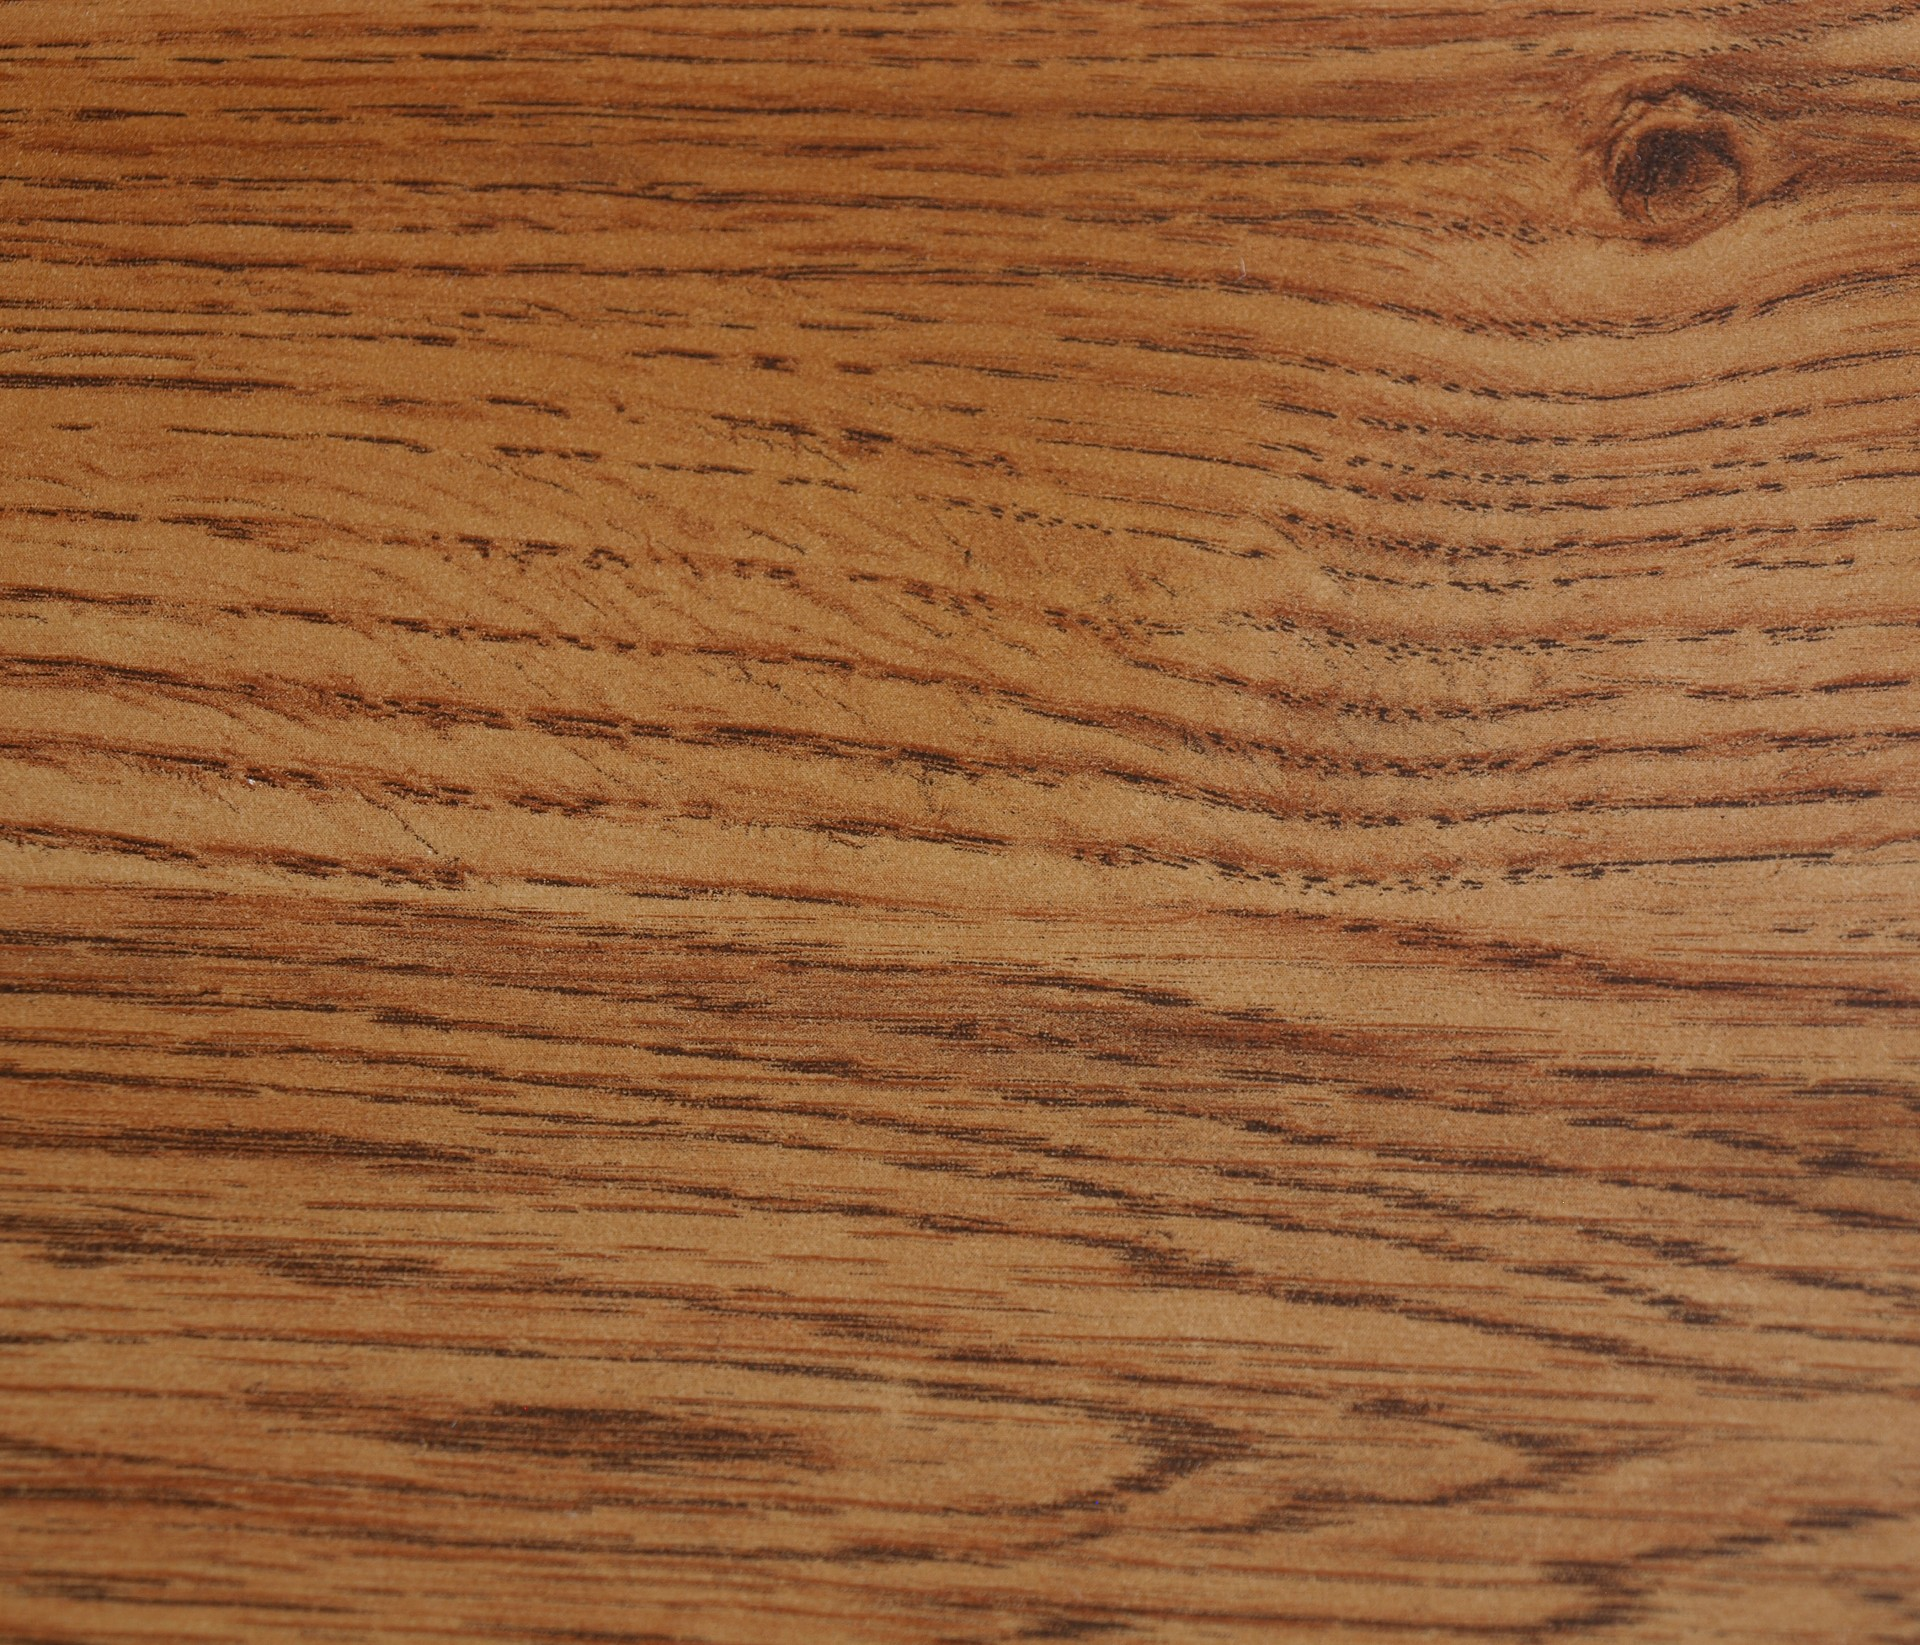 Woodgrain Texture Background Free Stock Photo - Public Domain Pictures